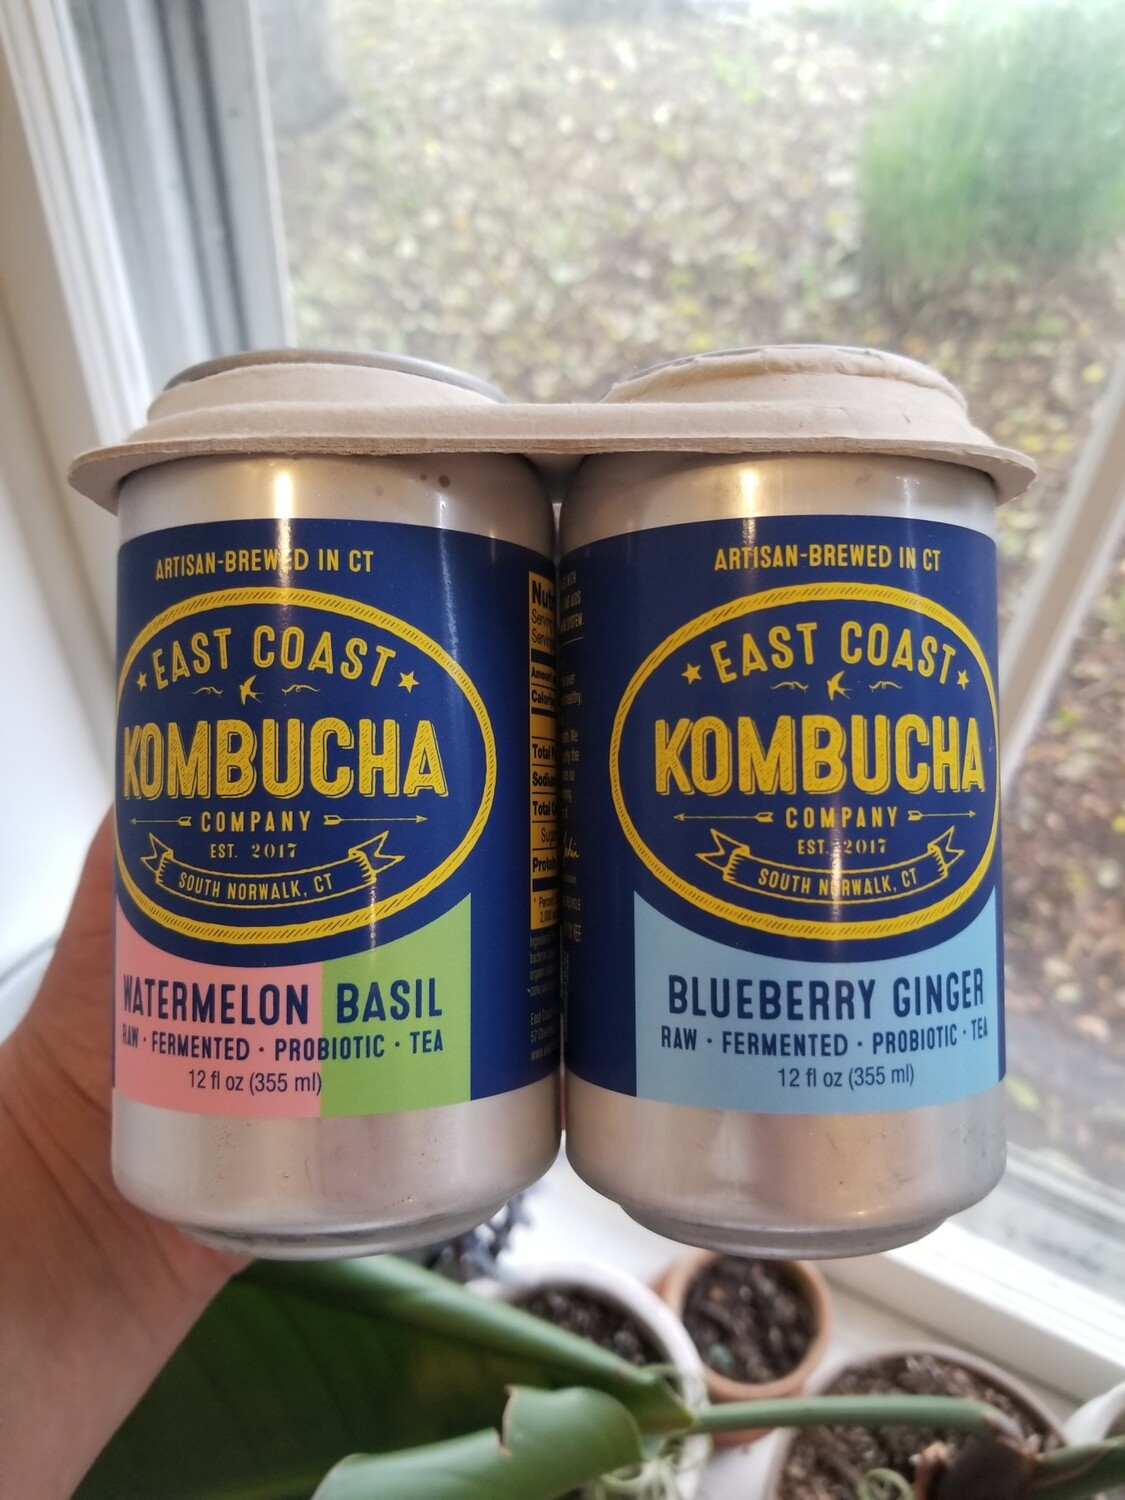 East Coast Kombucha variety 4-pack